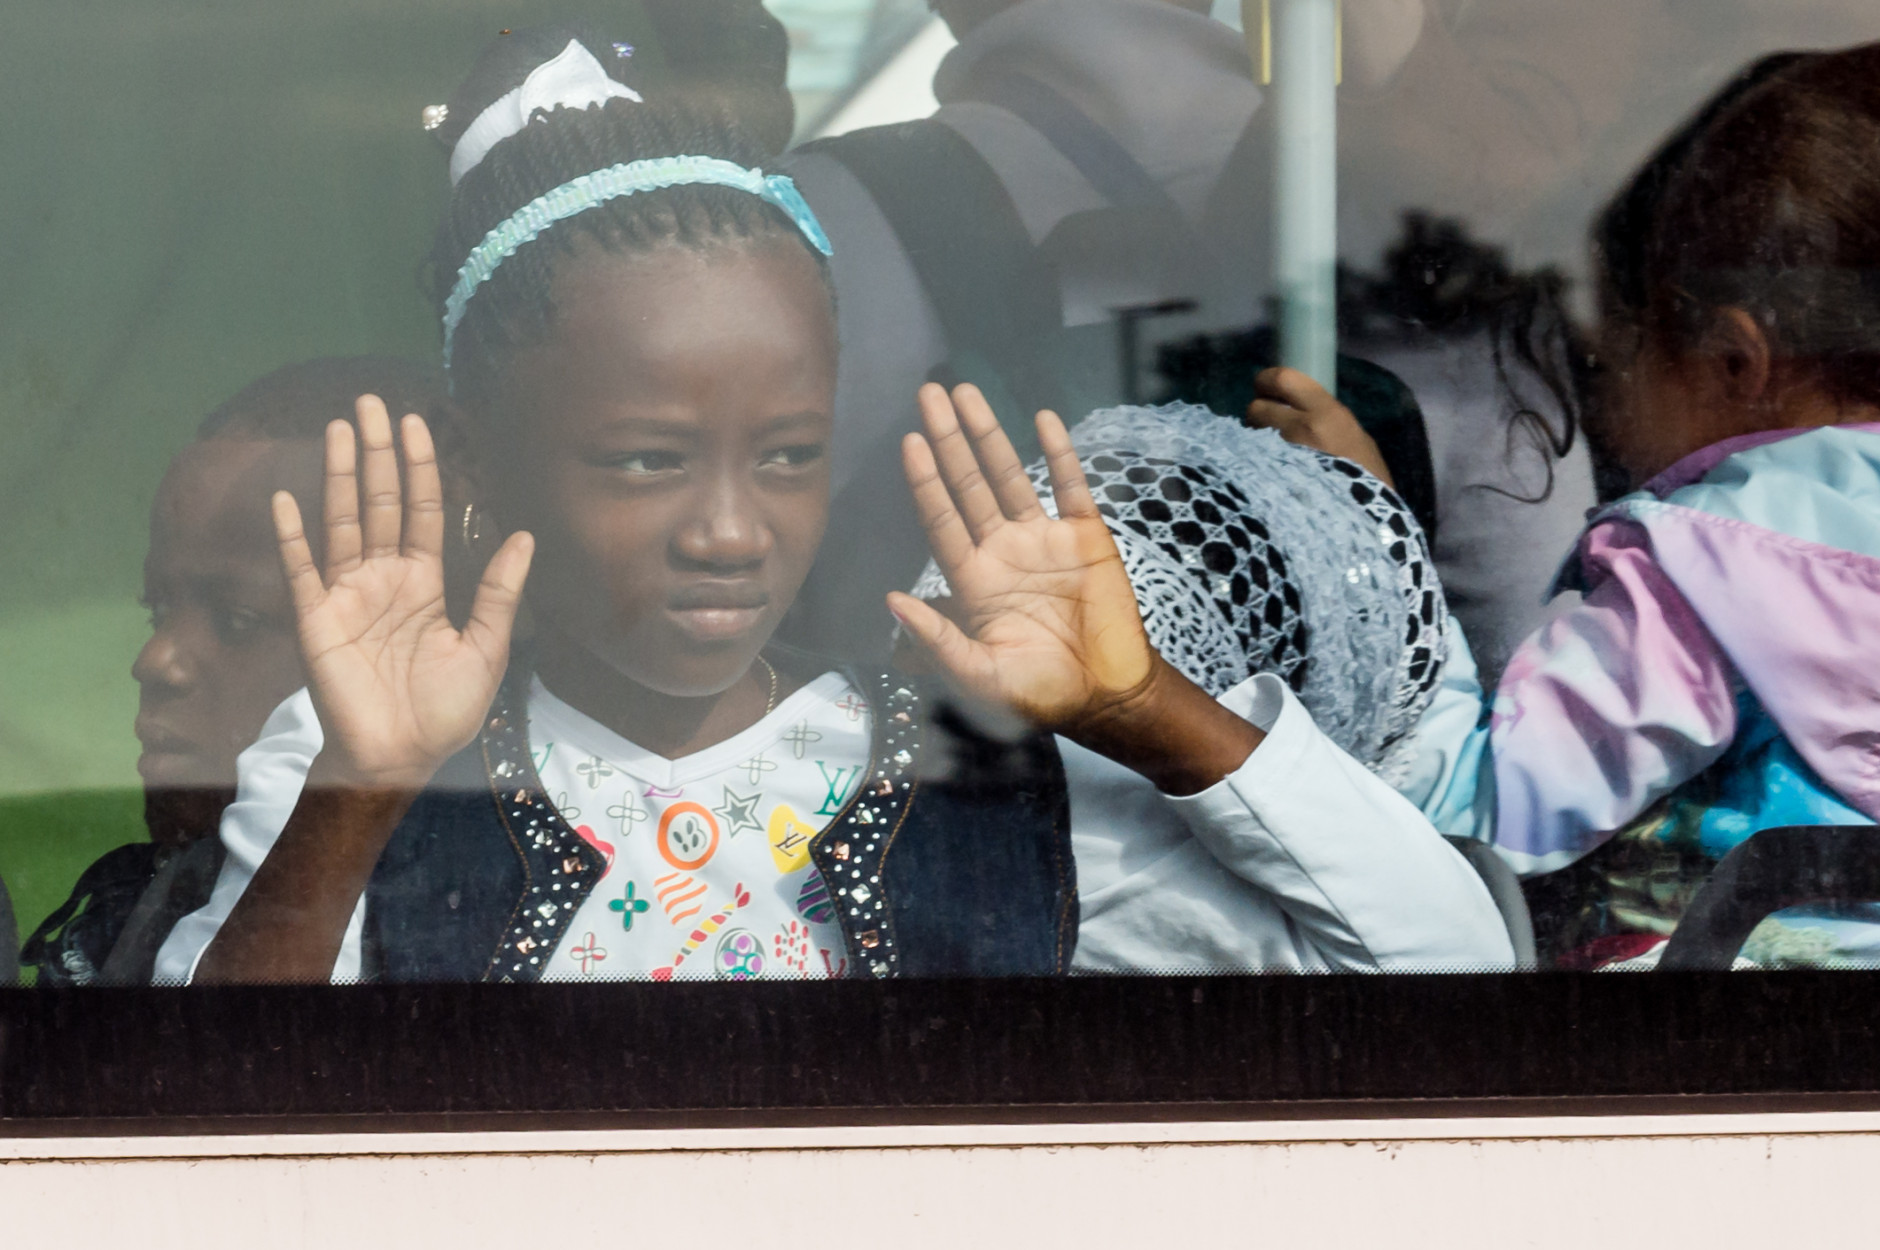 A young girl looks out of the window of a bus after being evacuated from Brussels airport, after explosions rocked the facility in Brussels, Belgium, Tuesday March 22, 2016. Authorities locked down the Belgian capital on Tuesday after explosions rocked the Brussels airport and subway system, killing at least 13 people and injuring many more. Belgium raised its terror alert to its highest level, diverting arriving planes and trains and ordering people to stay where they were. Airports across Europe tightened security. (AP Photo/Geert Vanden Wijngaert)